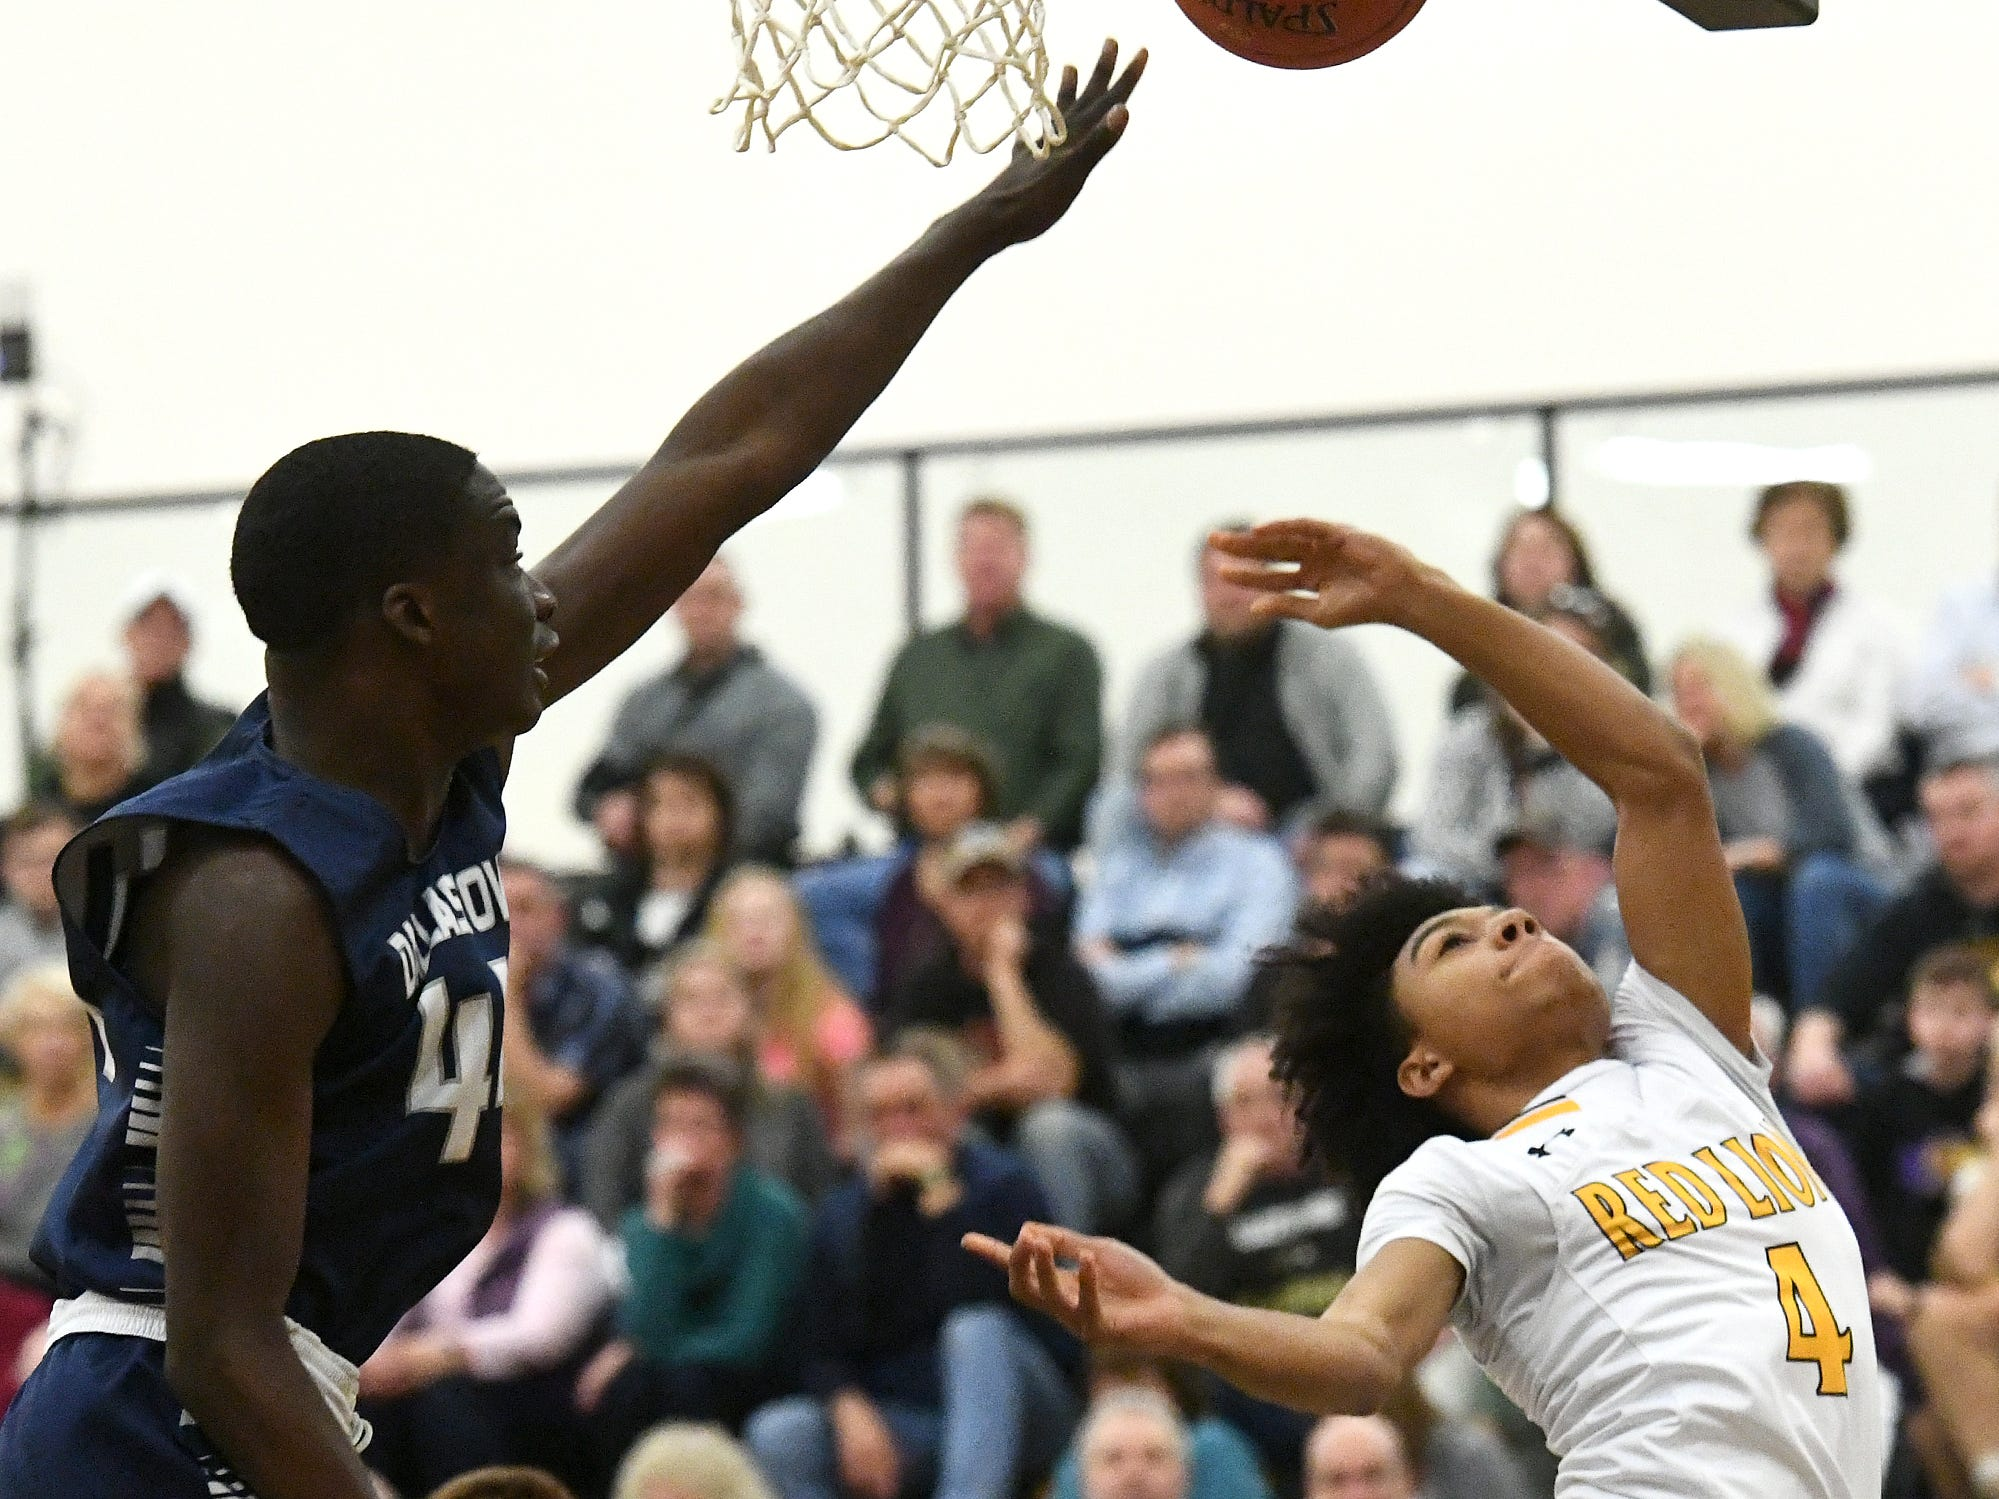 Red Lion's Cameron Lindsay throws up a shot with Dallastown's Leke Ogunnupe defending during basketball action at Red Lion Tuesday, Feb. 5, 2019. Bill Kalina photo